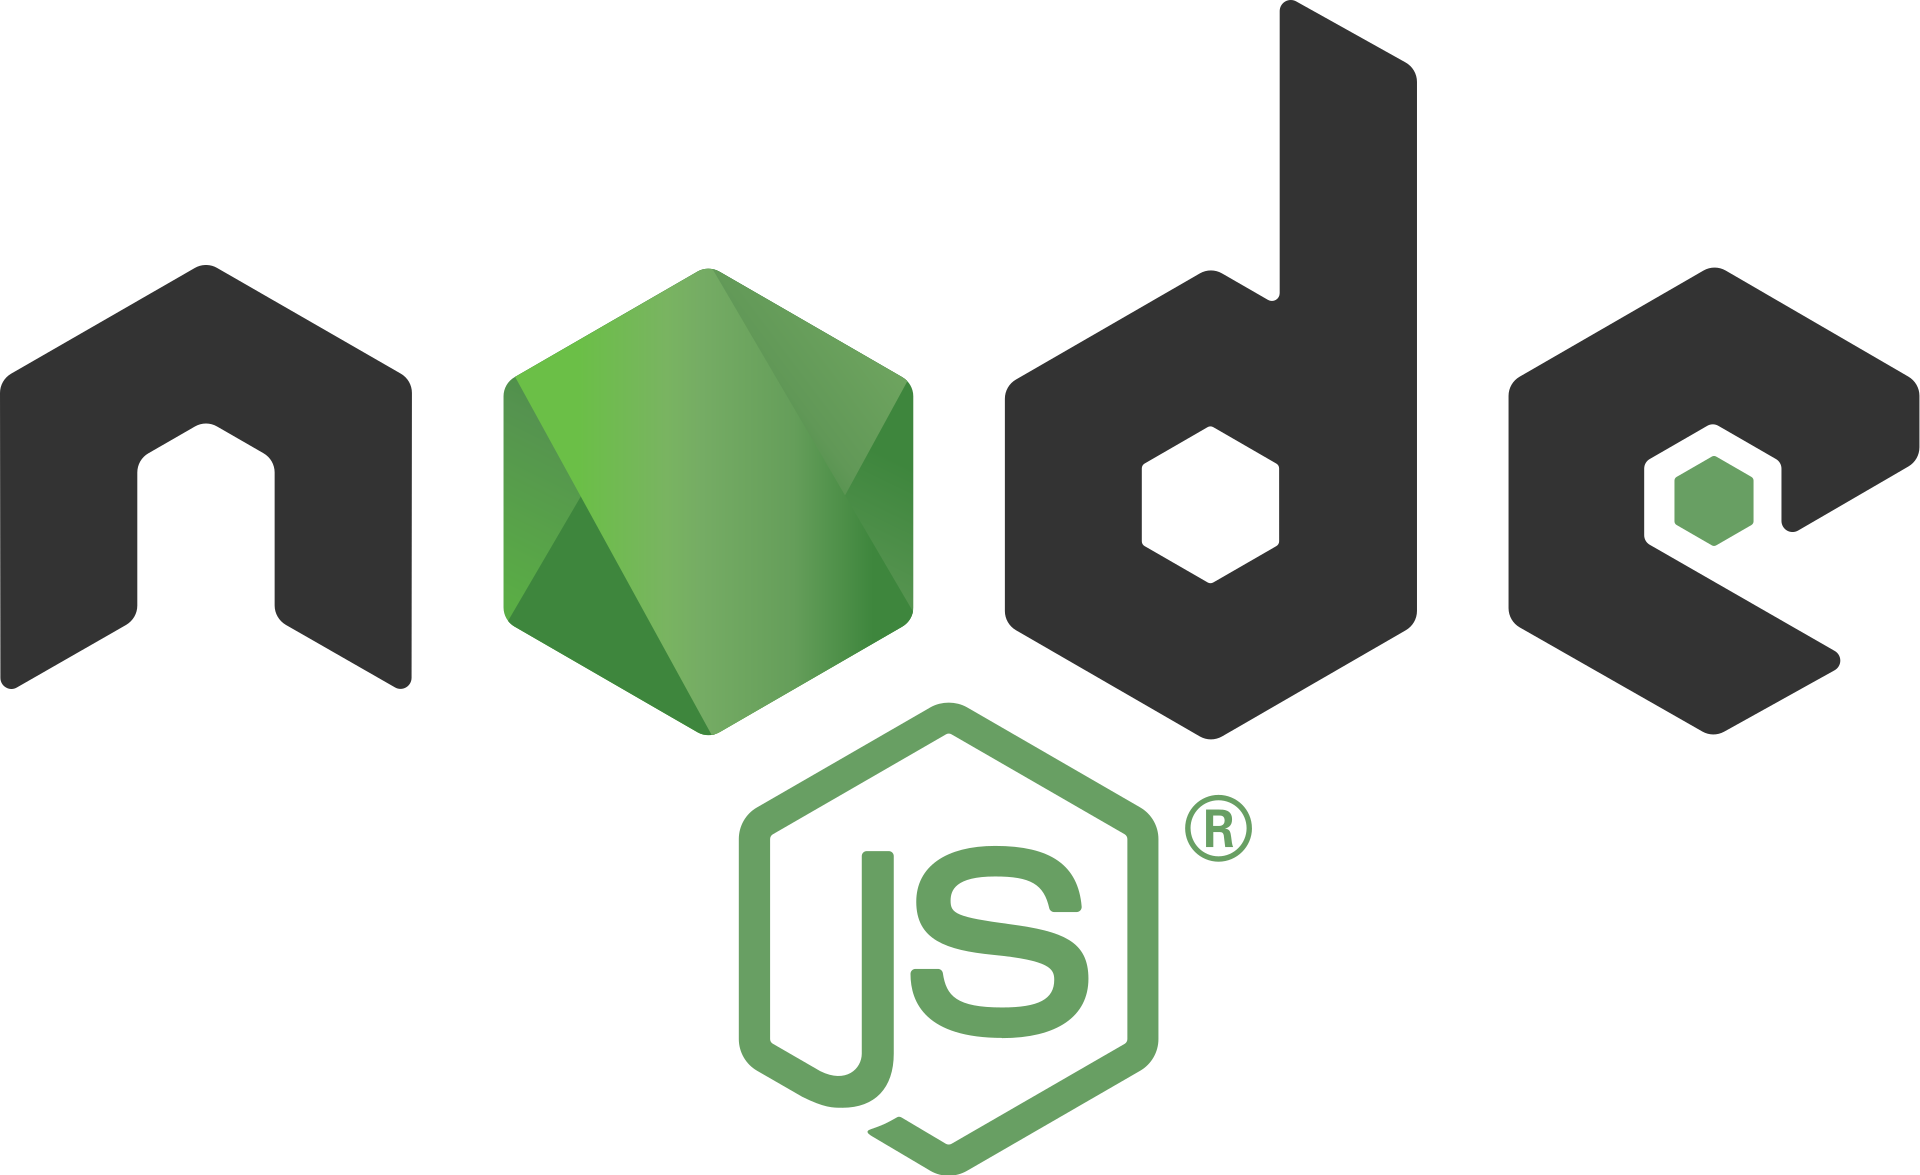 Node.js: designed to build scalable network applications